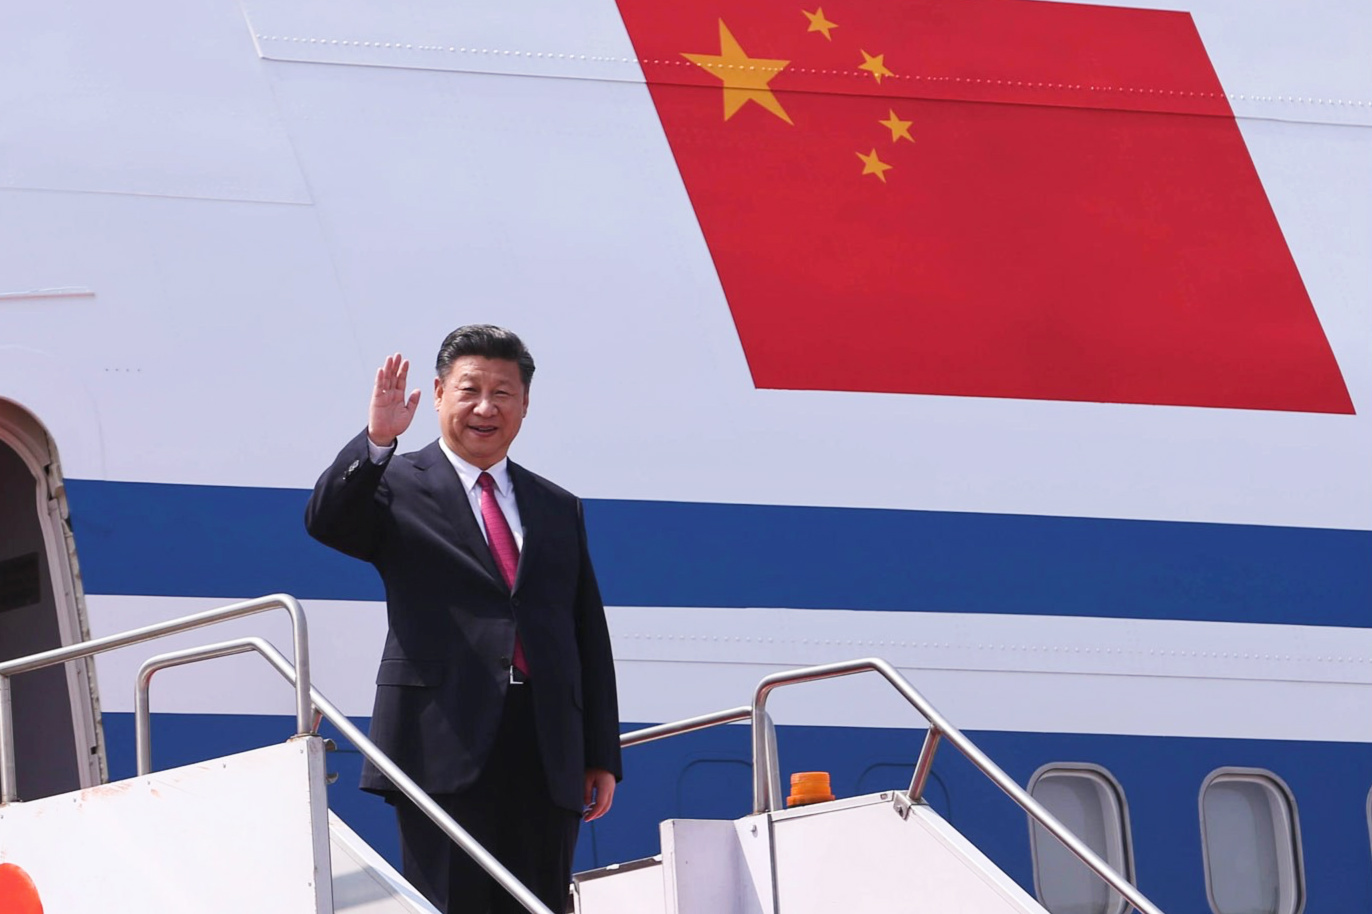 Xi arrives in DPRK for state visit